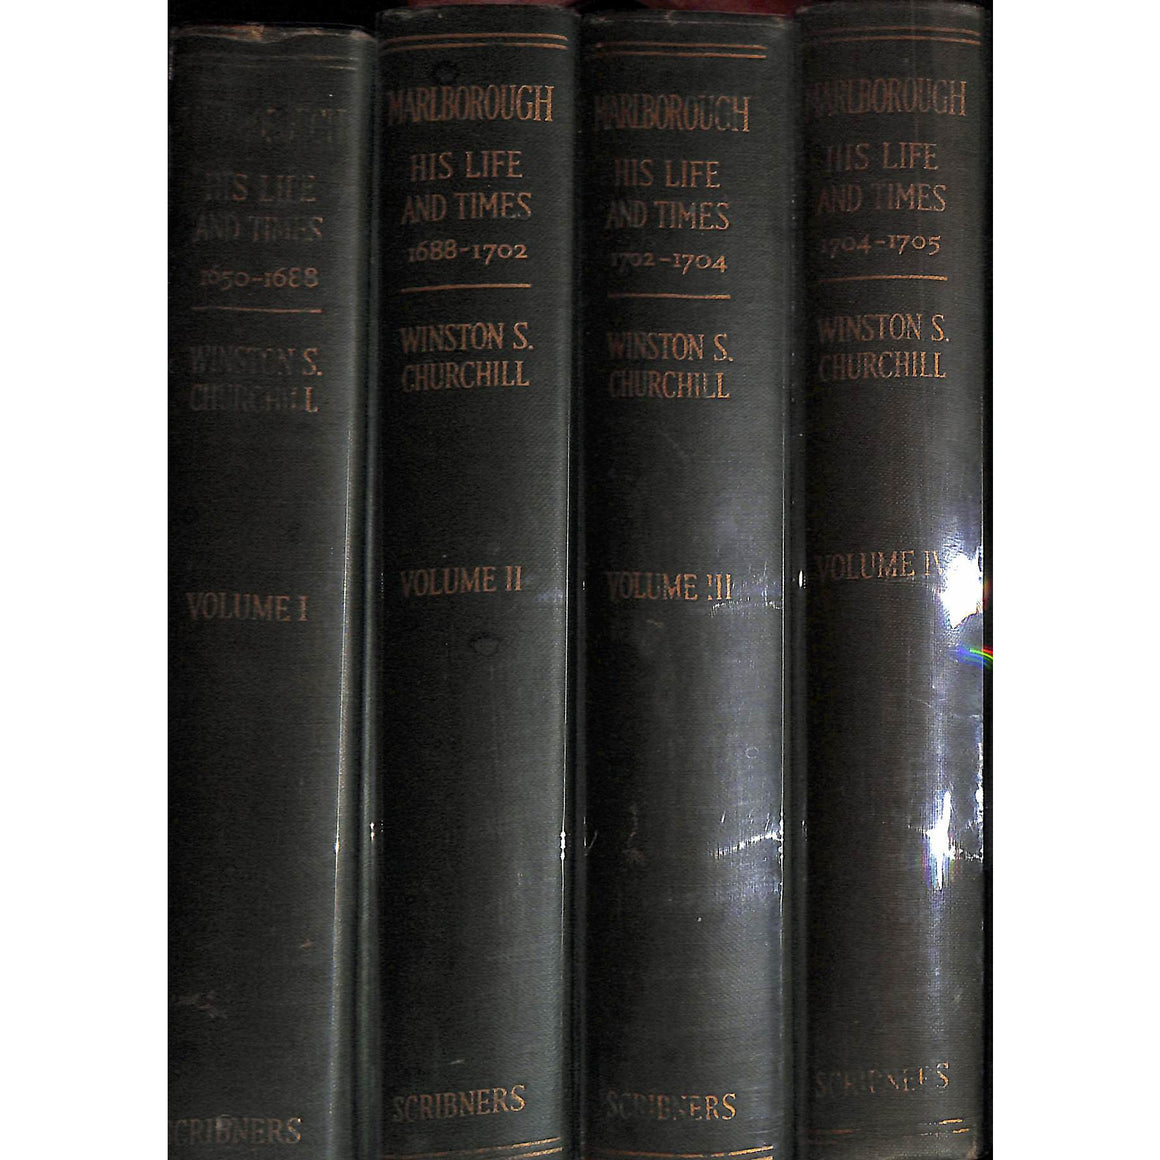 Marlborough: His Life and Times (4 Volume Set)